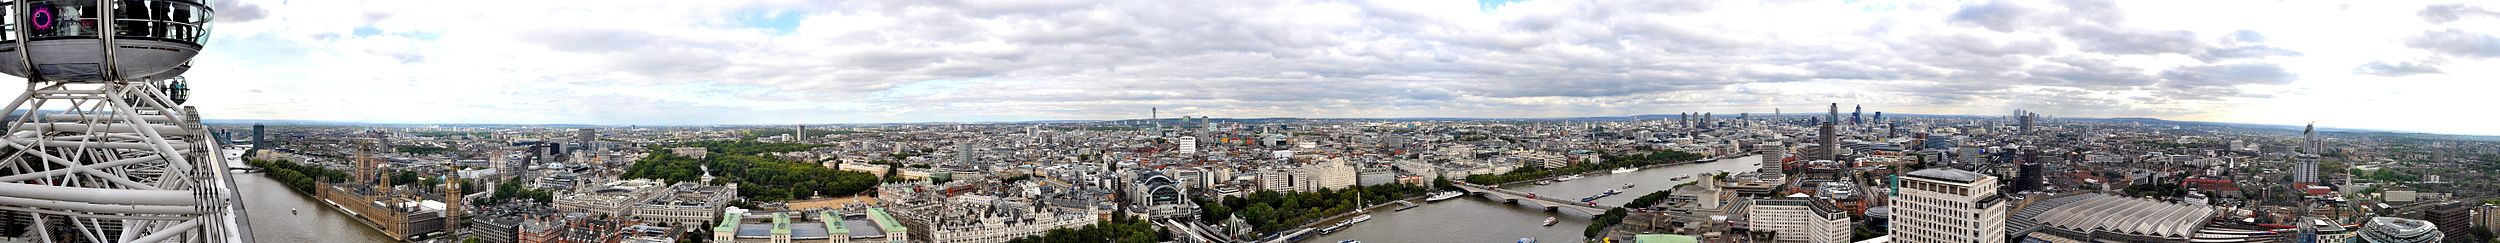 London 360° Panorama from the London Eye.jpg